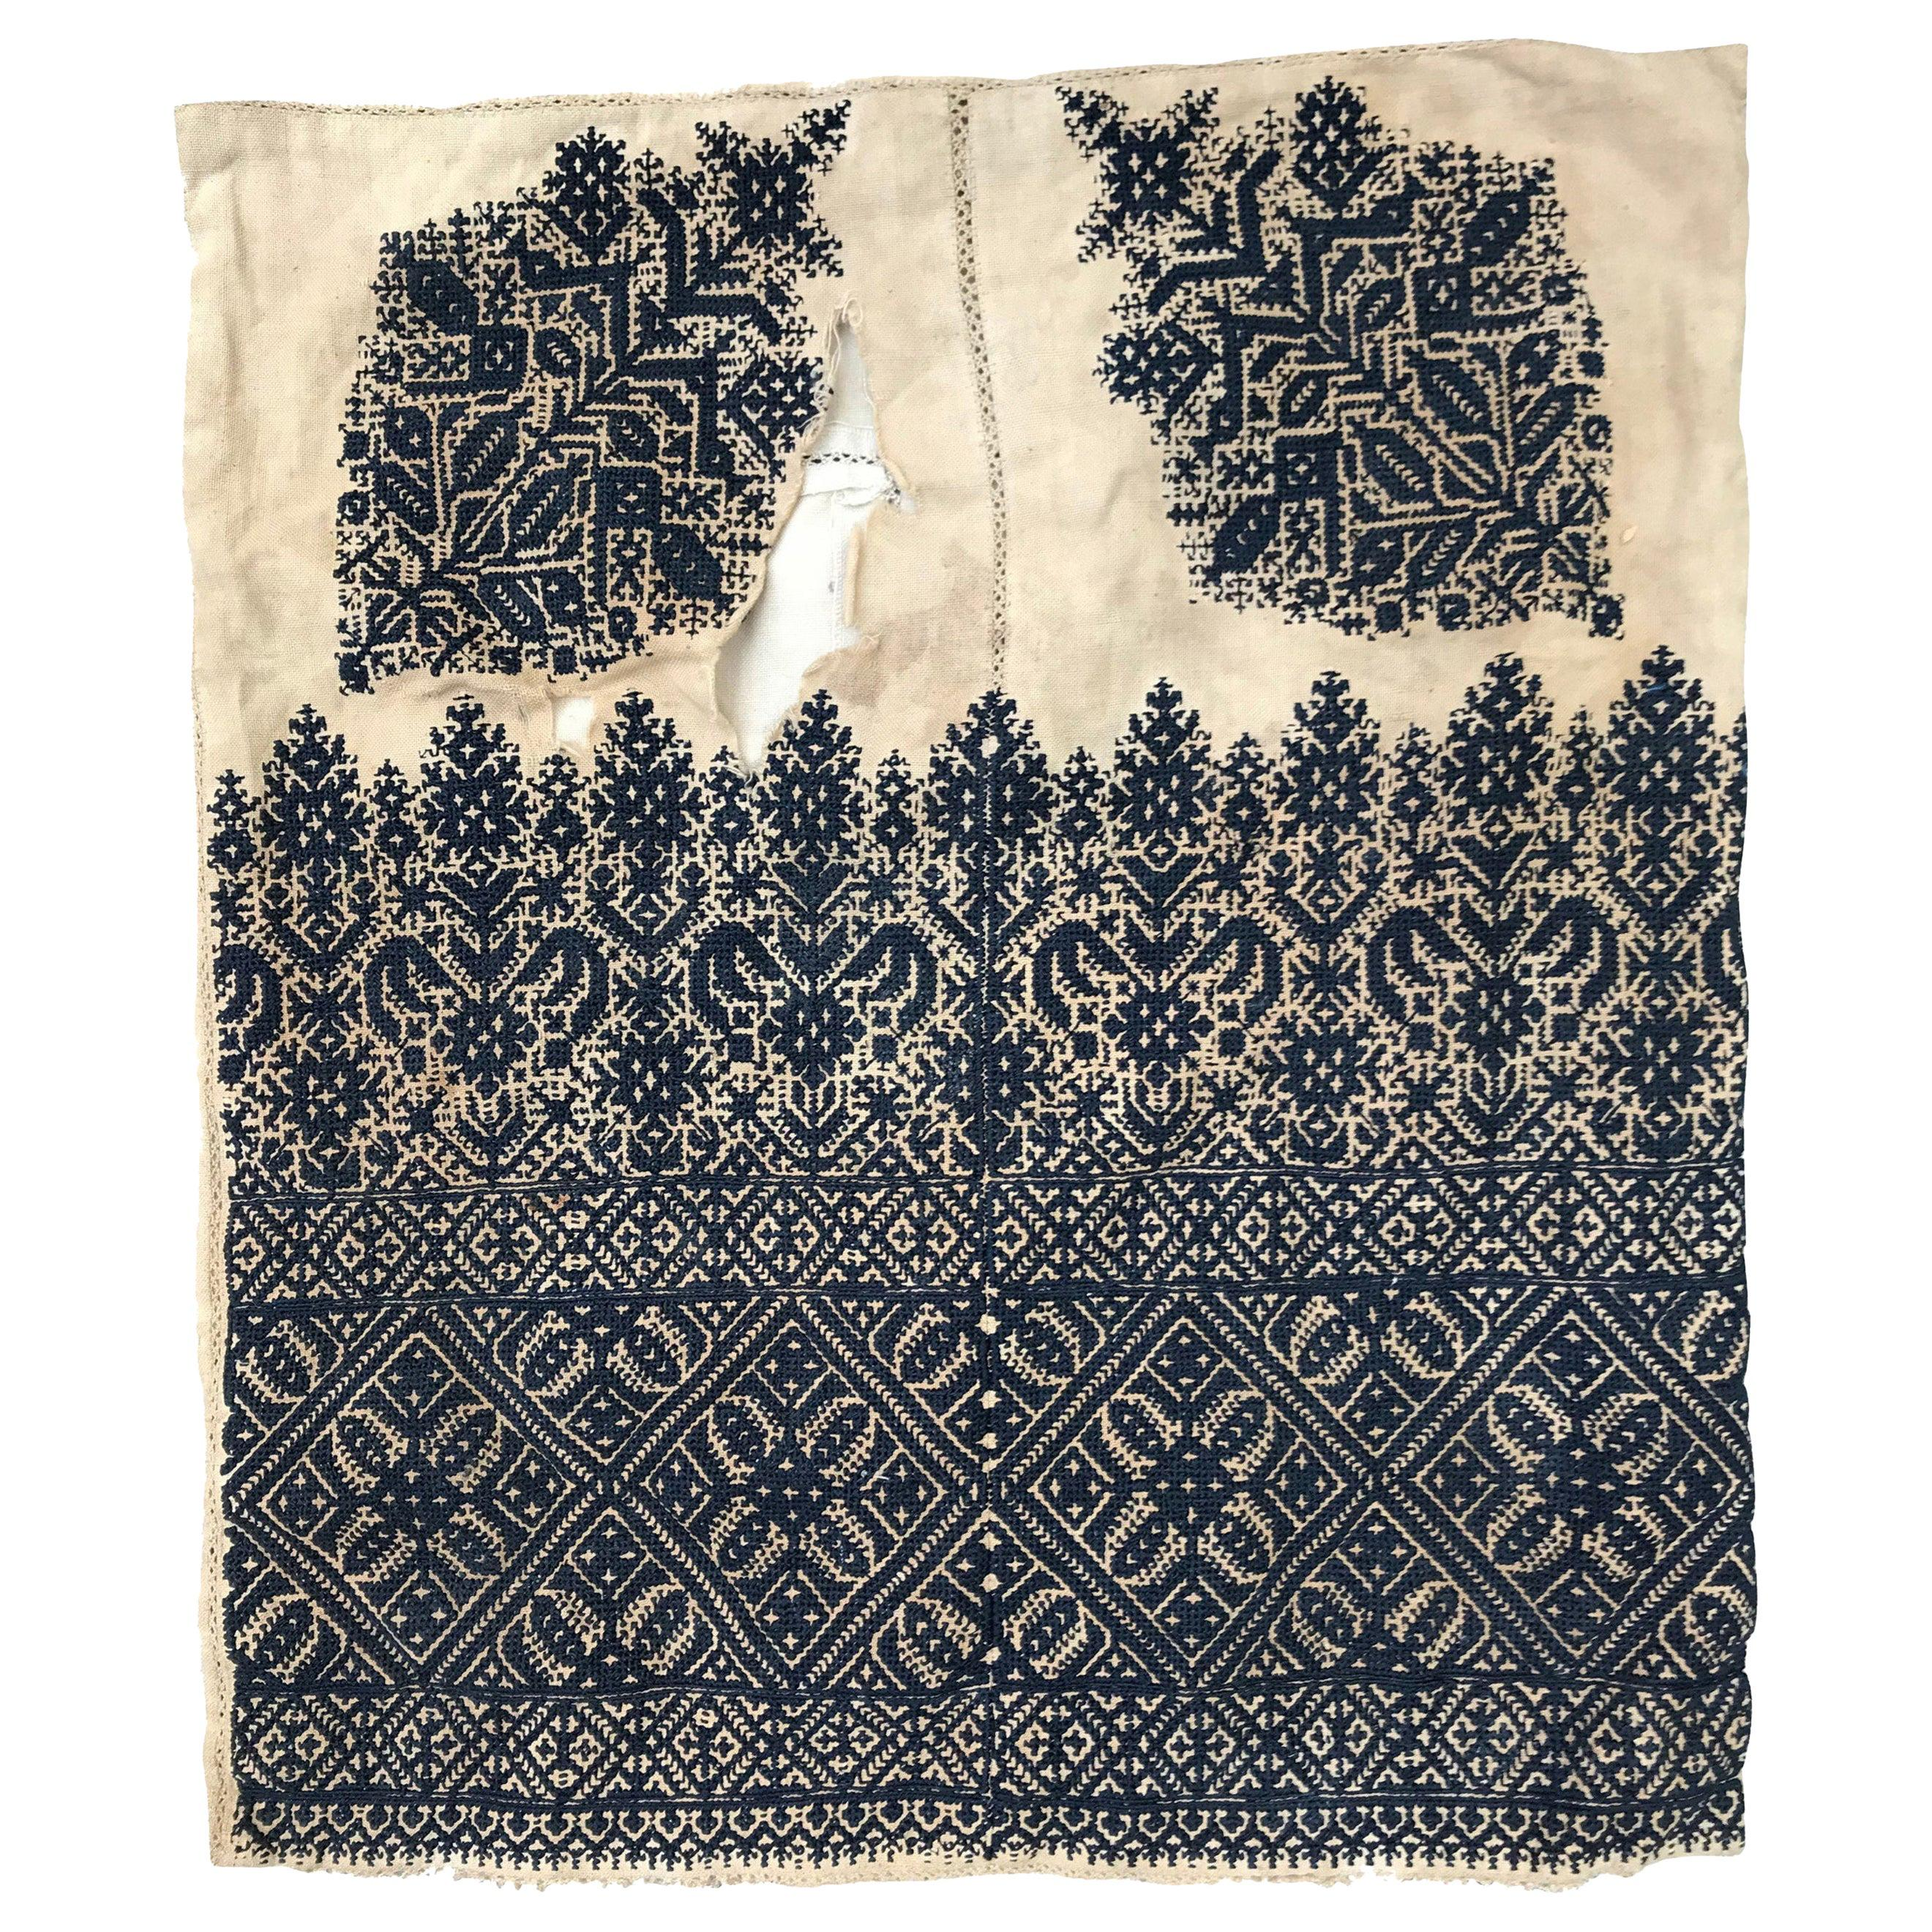 Antique Moroccan Fez Embroidery